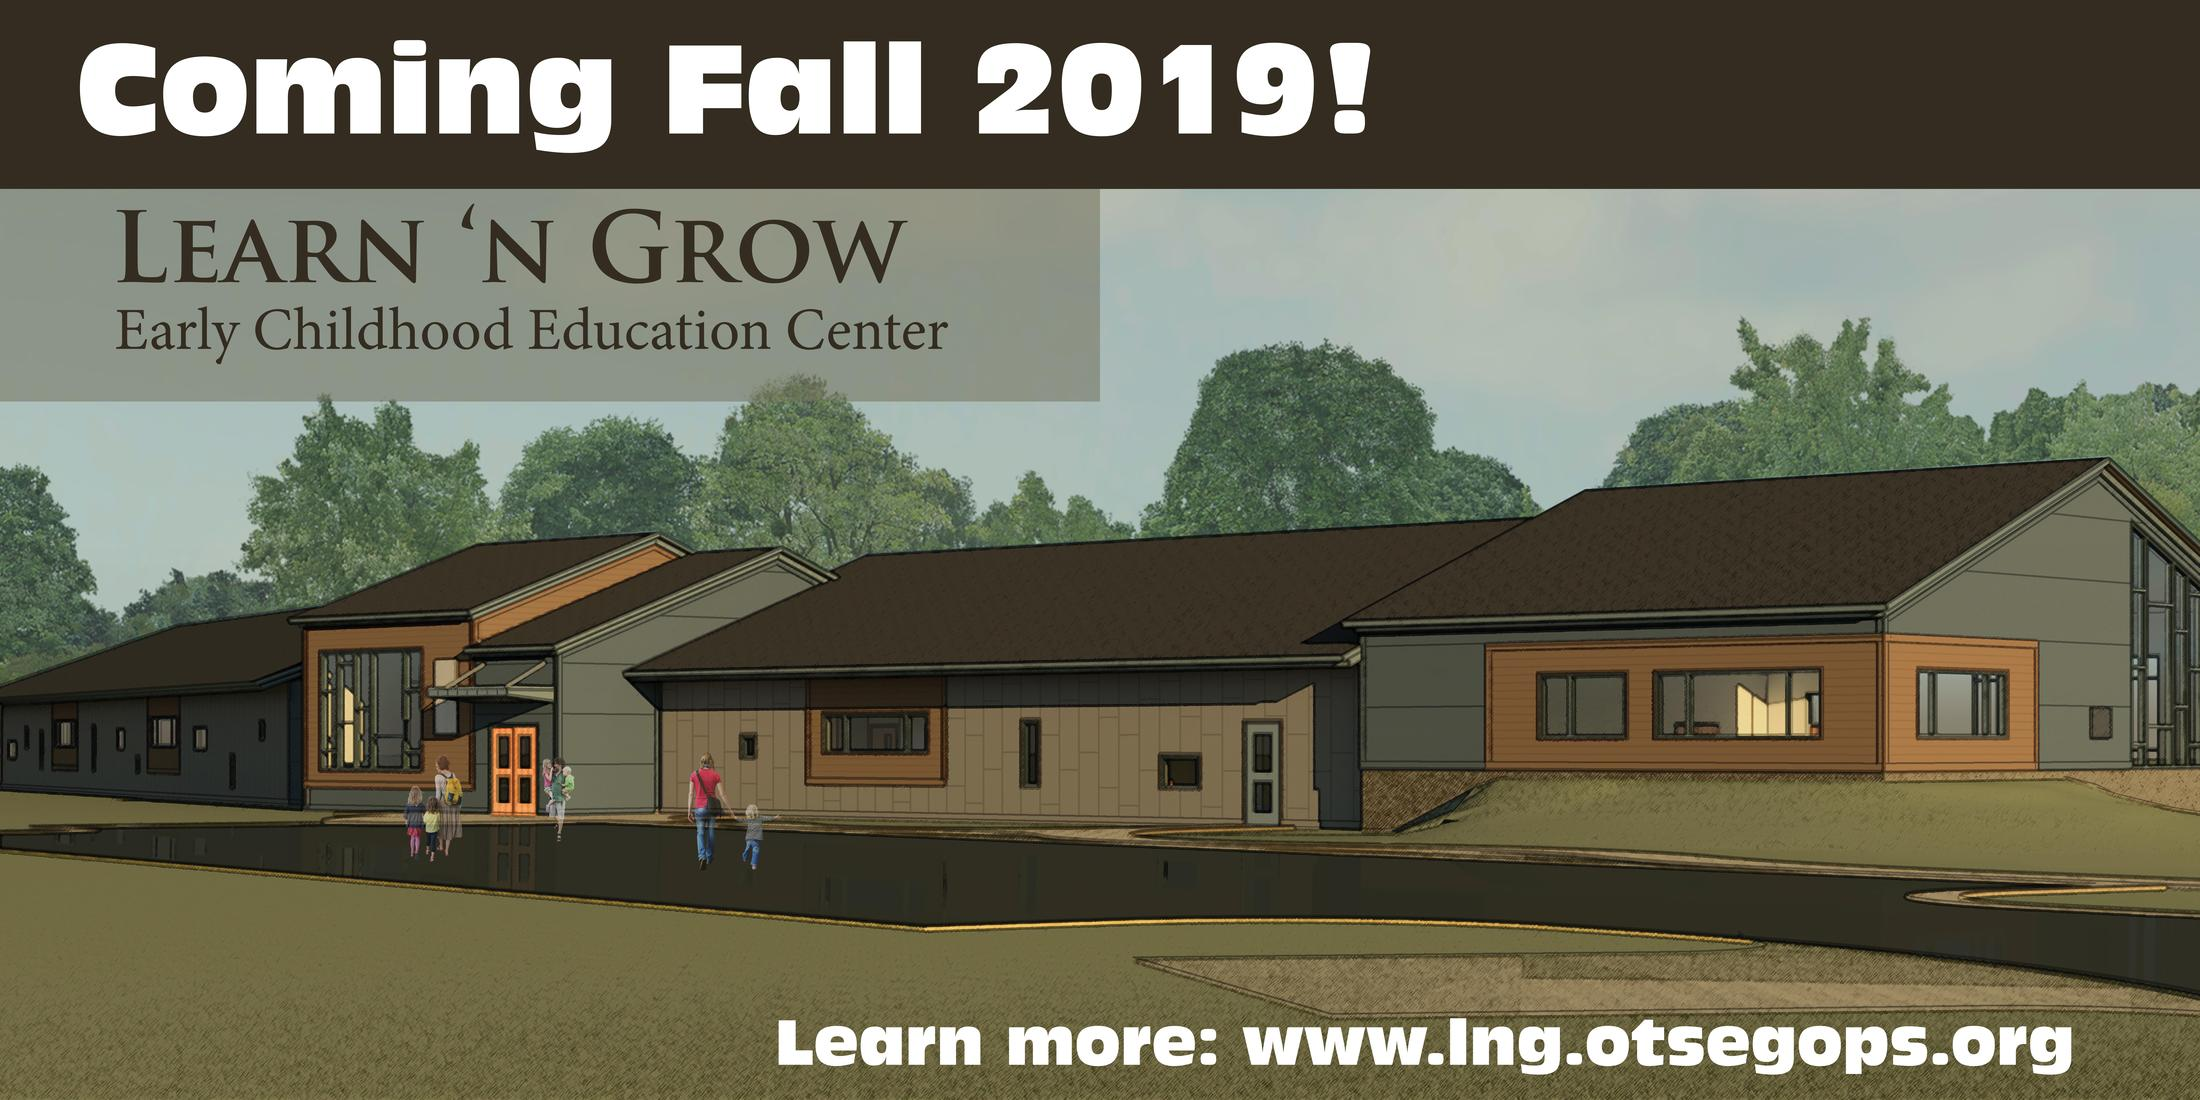 Picture of the new center (drawing) and words 'Opening Fall 2019'